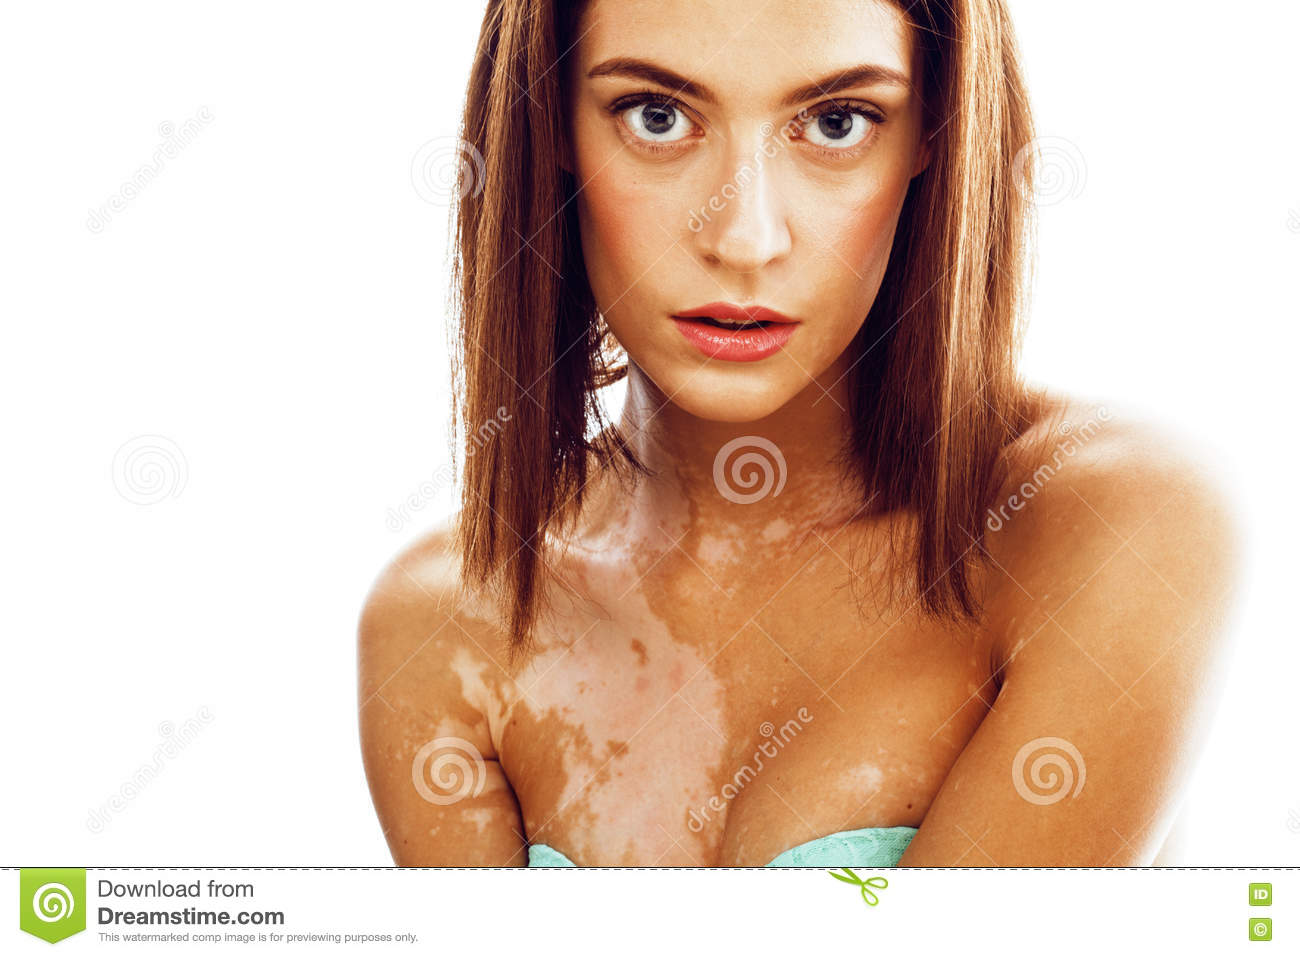 Beautiful Young Brunette Woman With Vitiligo Disease Close Up Isolated On White Positive Smiling Model Problems Concept Stock Photo Image Of Beauty Normal 81364906